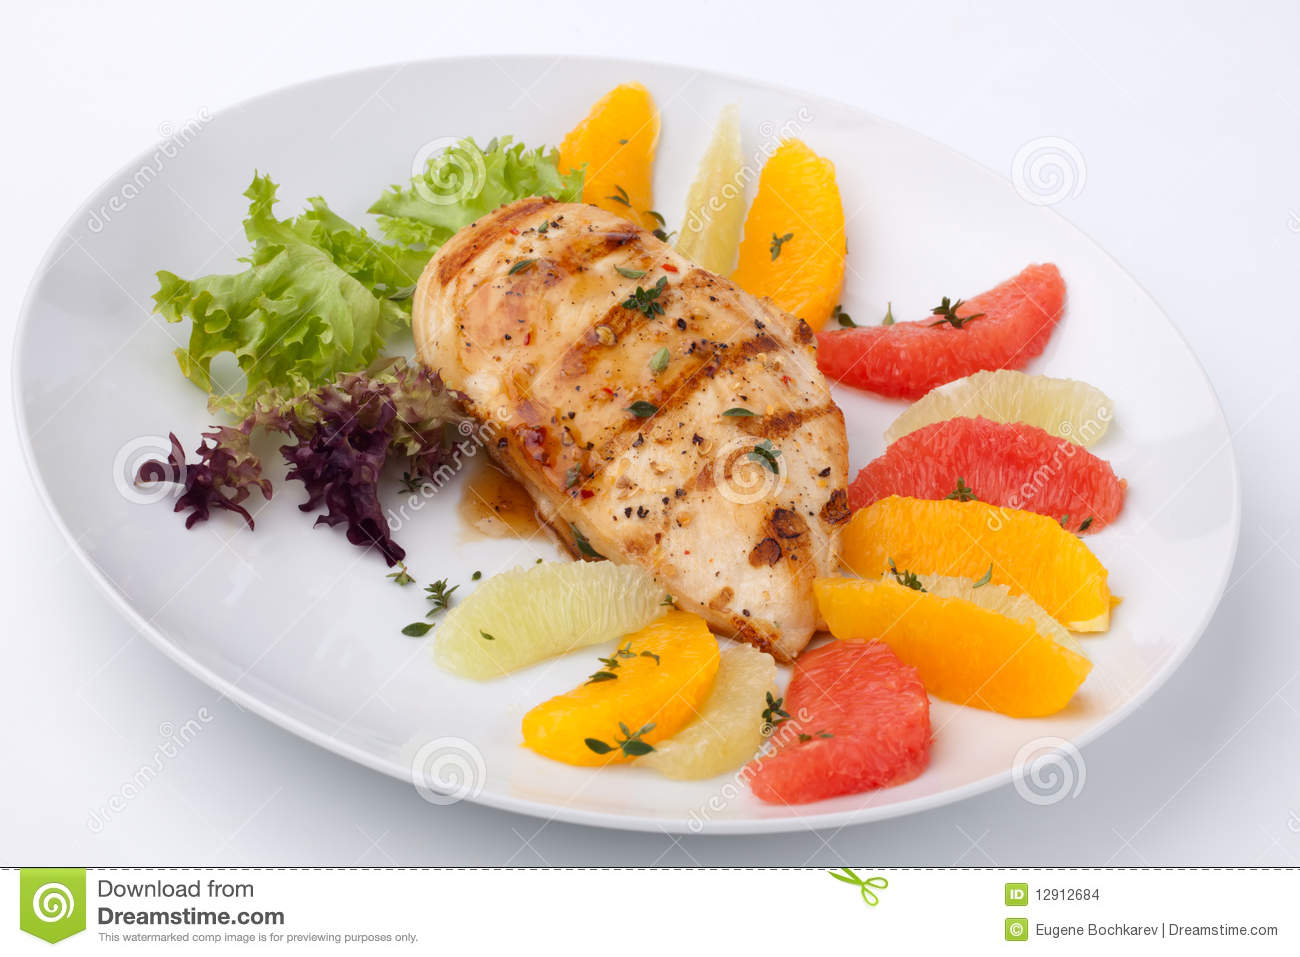 Grilled Chicken Breast And Citrus Salad Stock Images - Image: 12912684